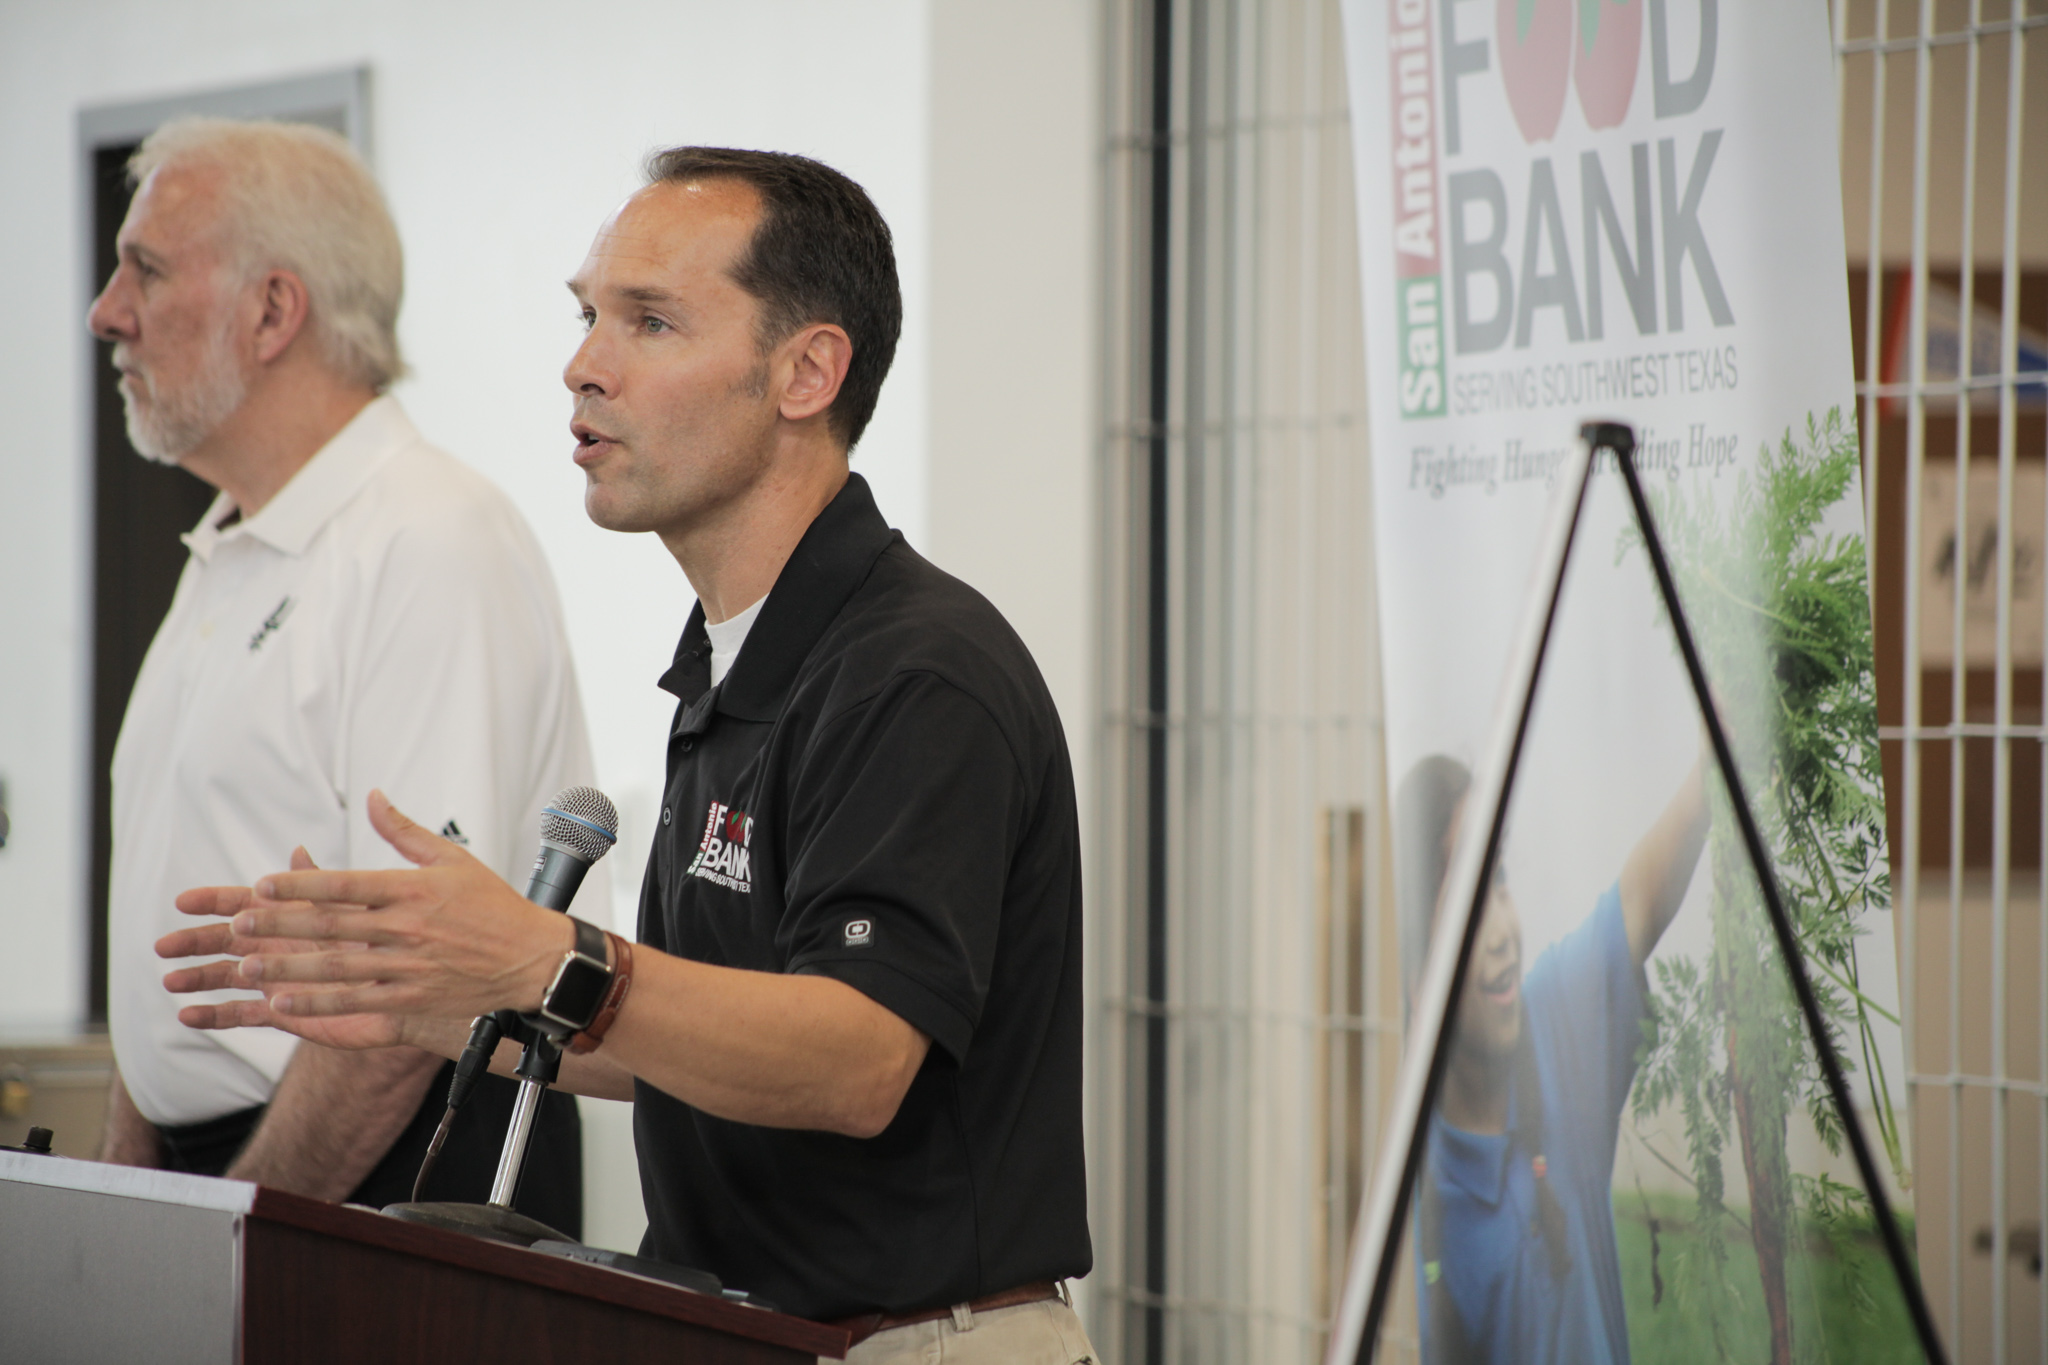 San Antonio Food Bank President & CEO Eric Cooper encourages the community to donate their time and food to the Food Bank this summer.